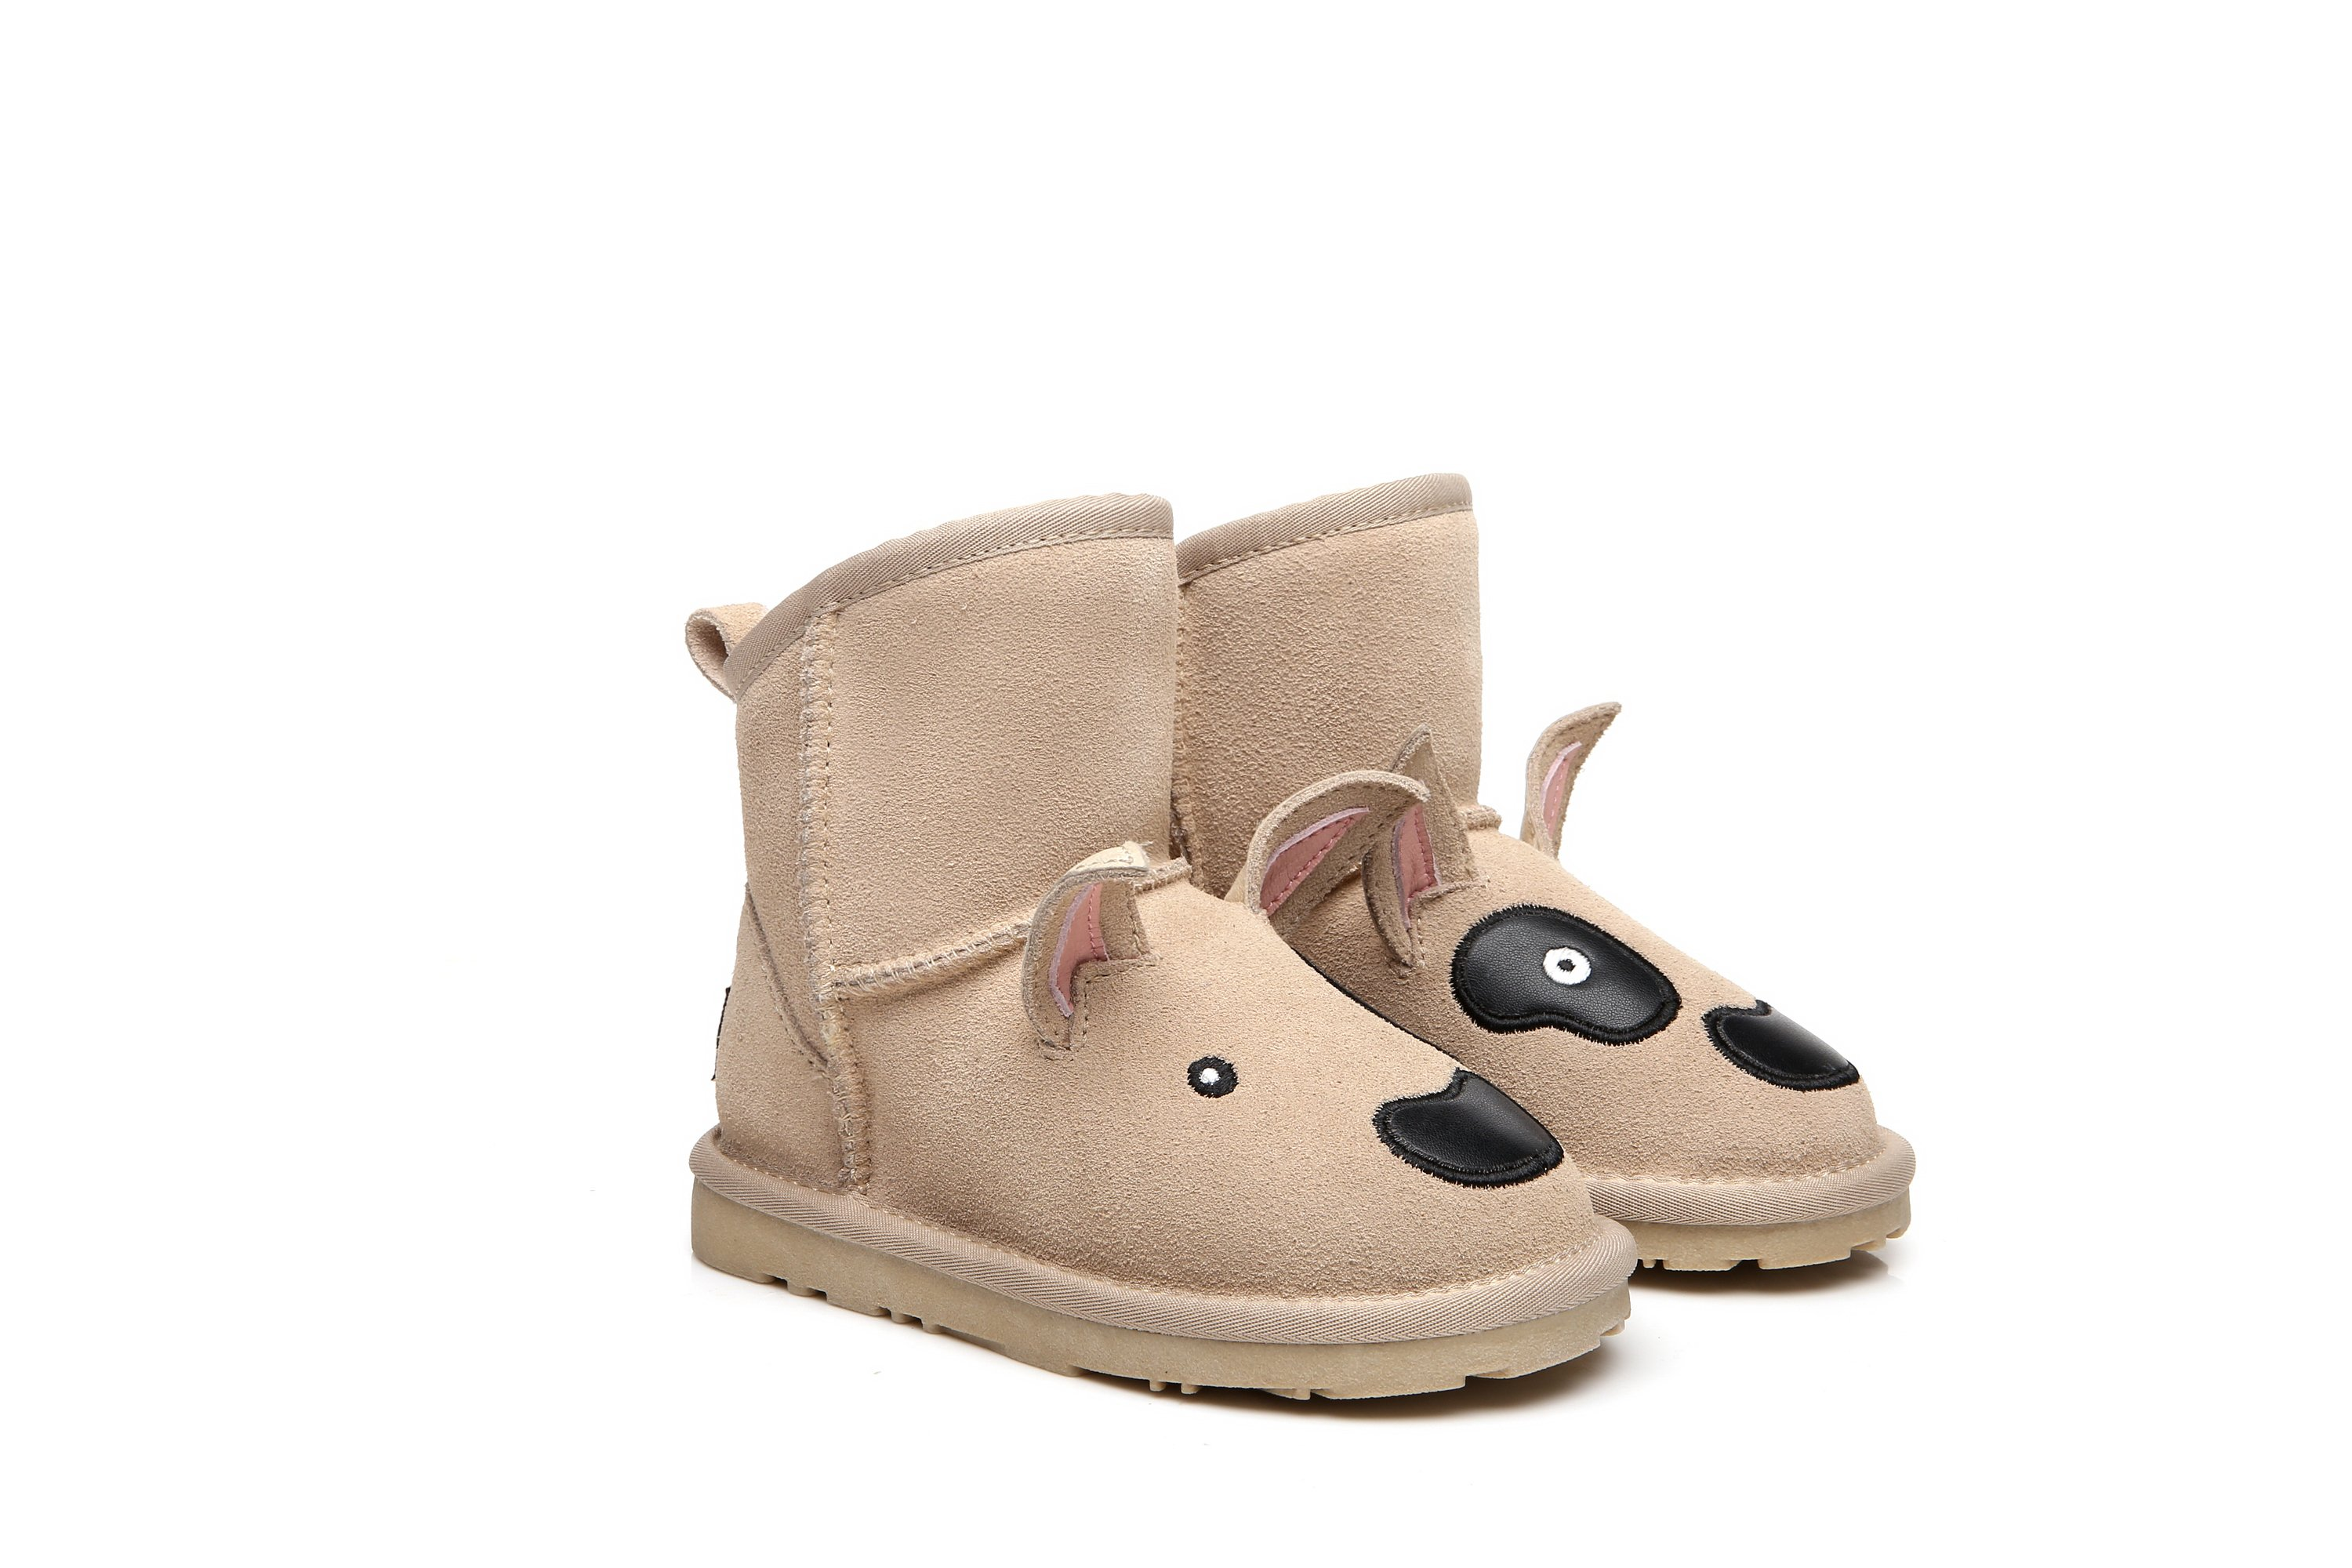 bf5c61866322 Image of UGG kids Boots Bull Terrier - Cowhide Upper Australian Sheepskin  Lining Water Resistant